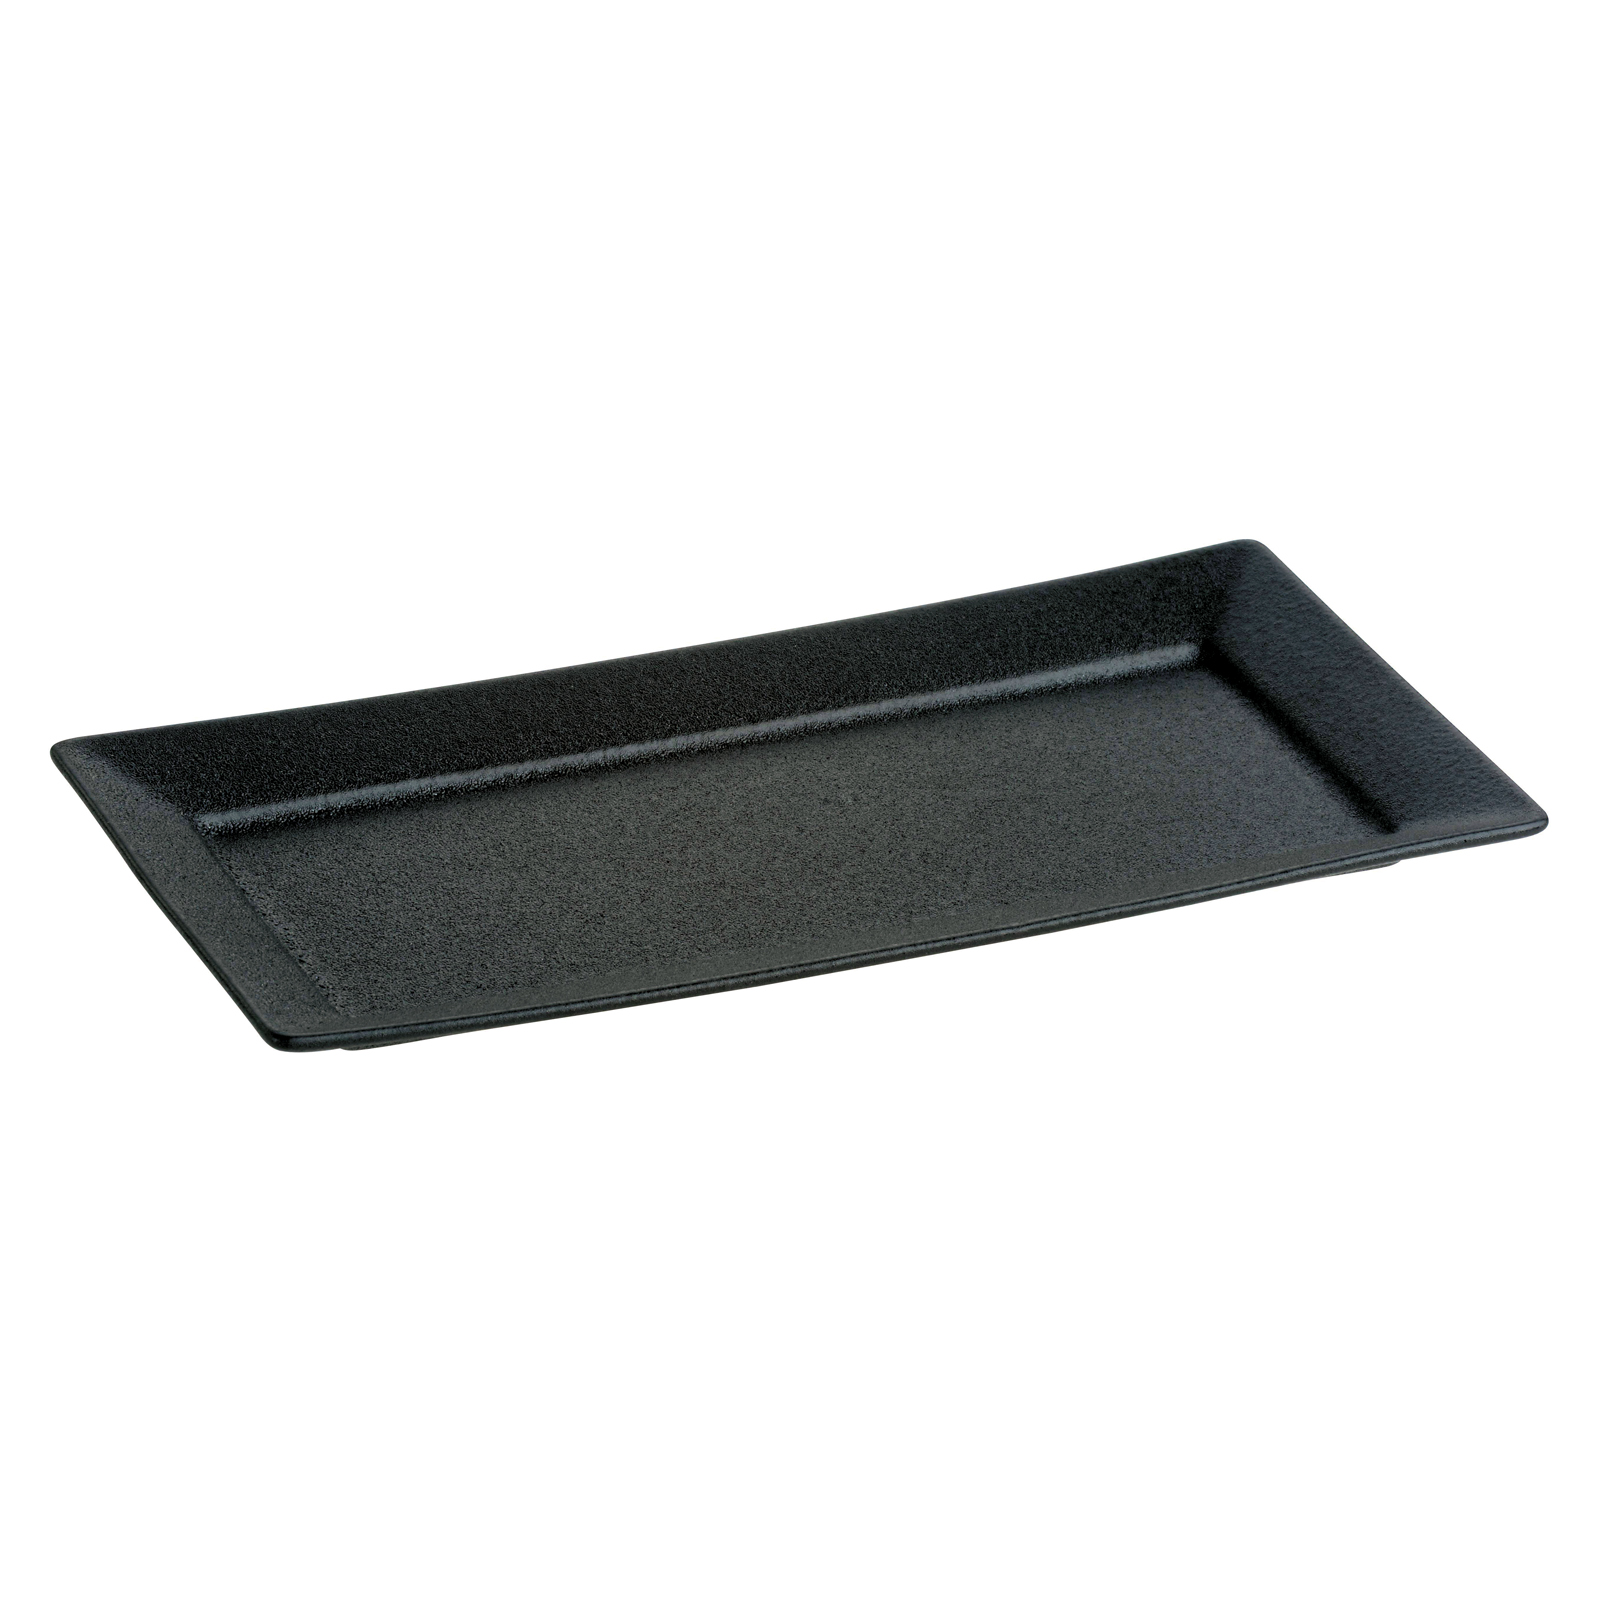 Gastro-Noir-Mie Small Rectangular Platter by BIA